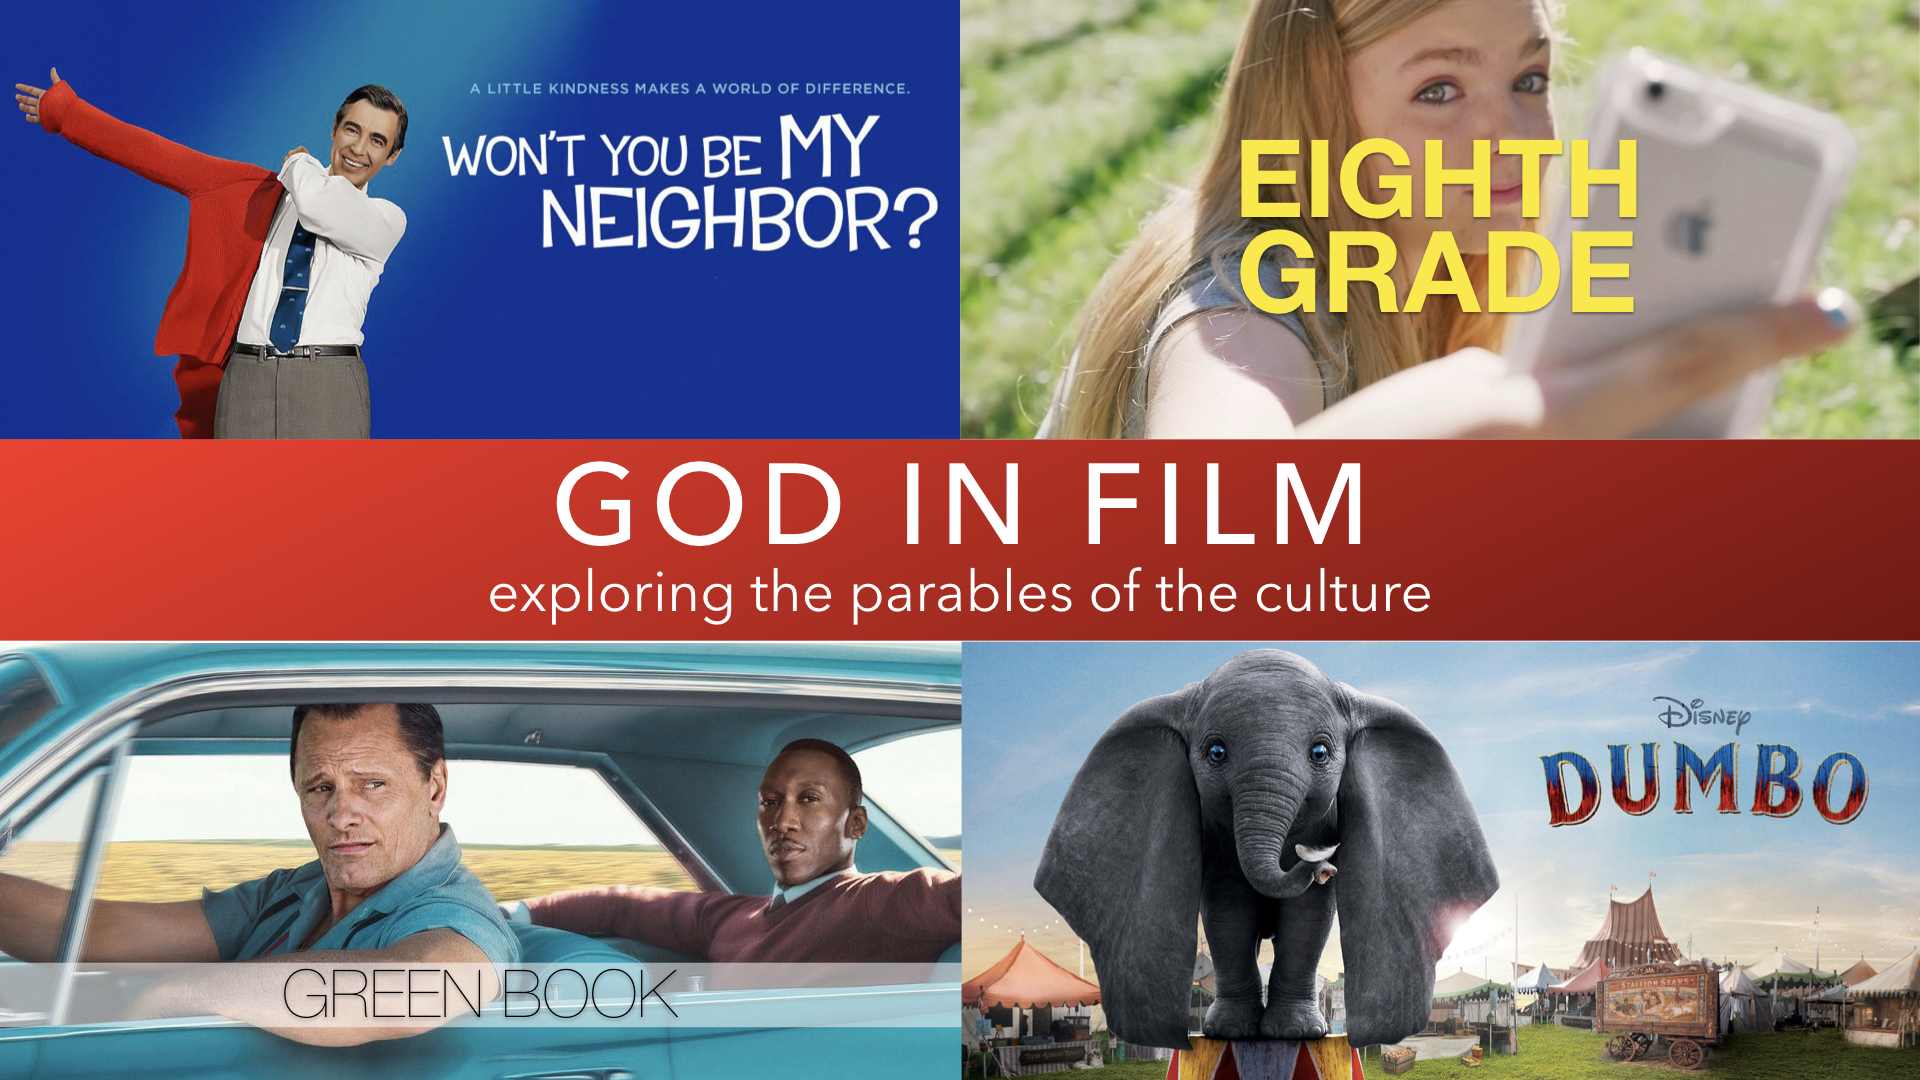 GOD IN FILM 2019 - WON'T YOU BE MY NEIGHBOR? - THE TRANSFORMING POWER OF KINDNESS | 08.04.2019 | WATCH | LISTENEIGHTH GRADE - DO WE EVER REALY GET OUT OF MIDDLE SCHOOL? | 08.11.2019 | WATCH | LISTENGREEN BOOK - FINDING CONNECTION IN A FRAGMENTED WORLD | 08.18.2019 | WATCH | LISTENDUMBO - WITH GOD, YOUR WEAKNESS CAN MAKE YOU SOAR | 08.25.2019